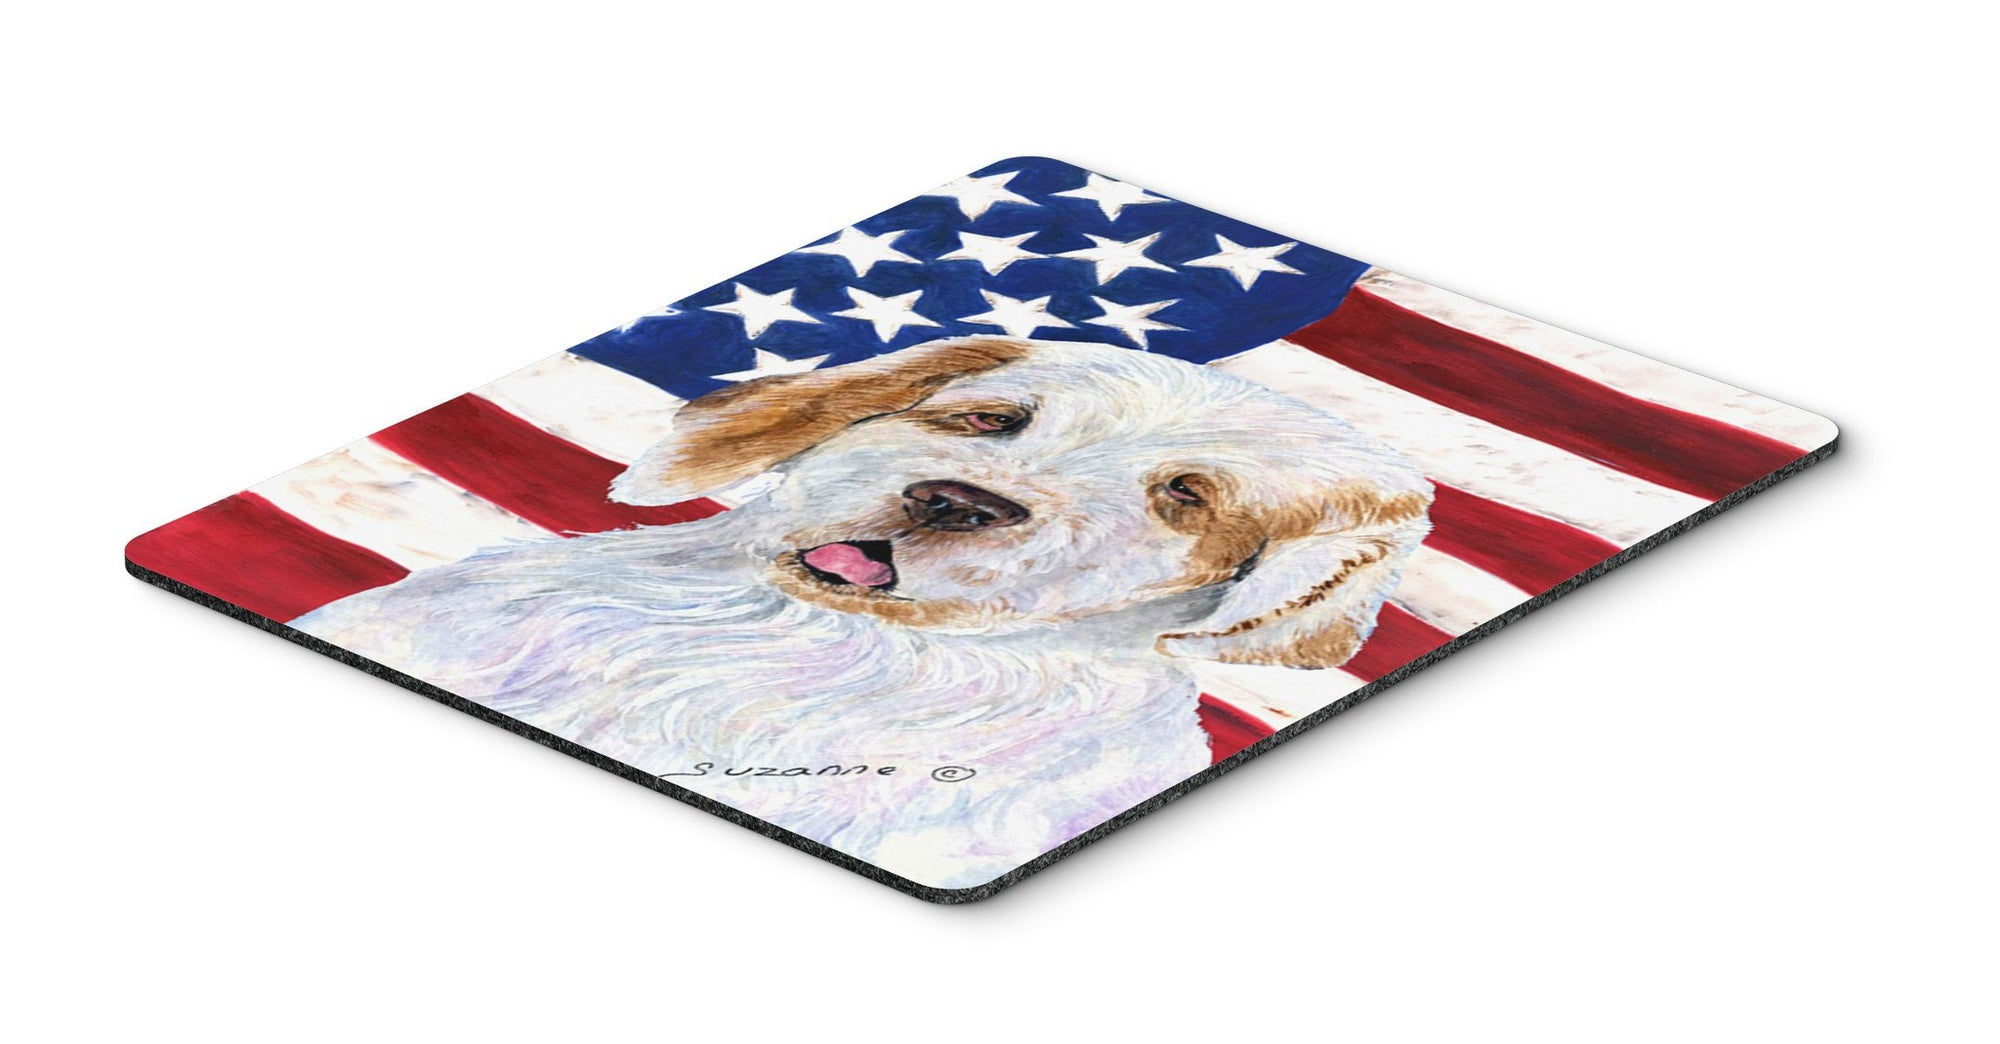 USA American Flag with Clumber Spaniel Mouse Pad, Hot Pad or Trivet by Caroline's Treasures